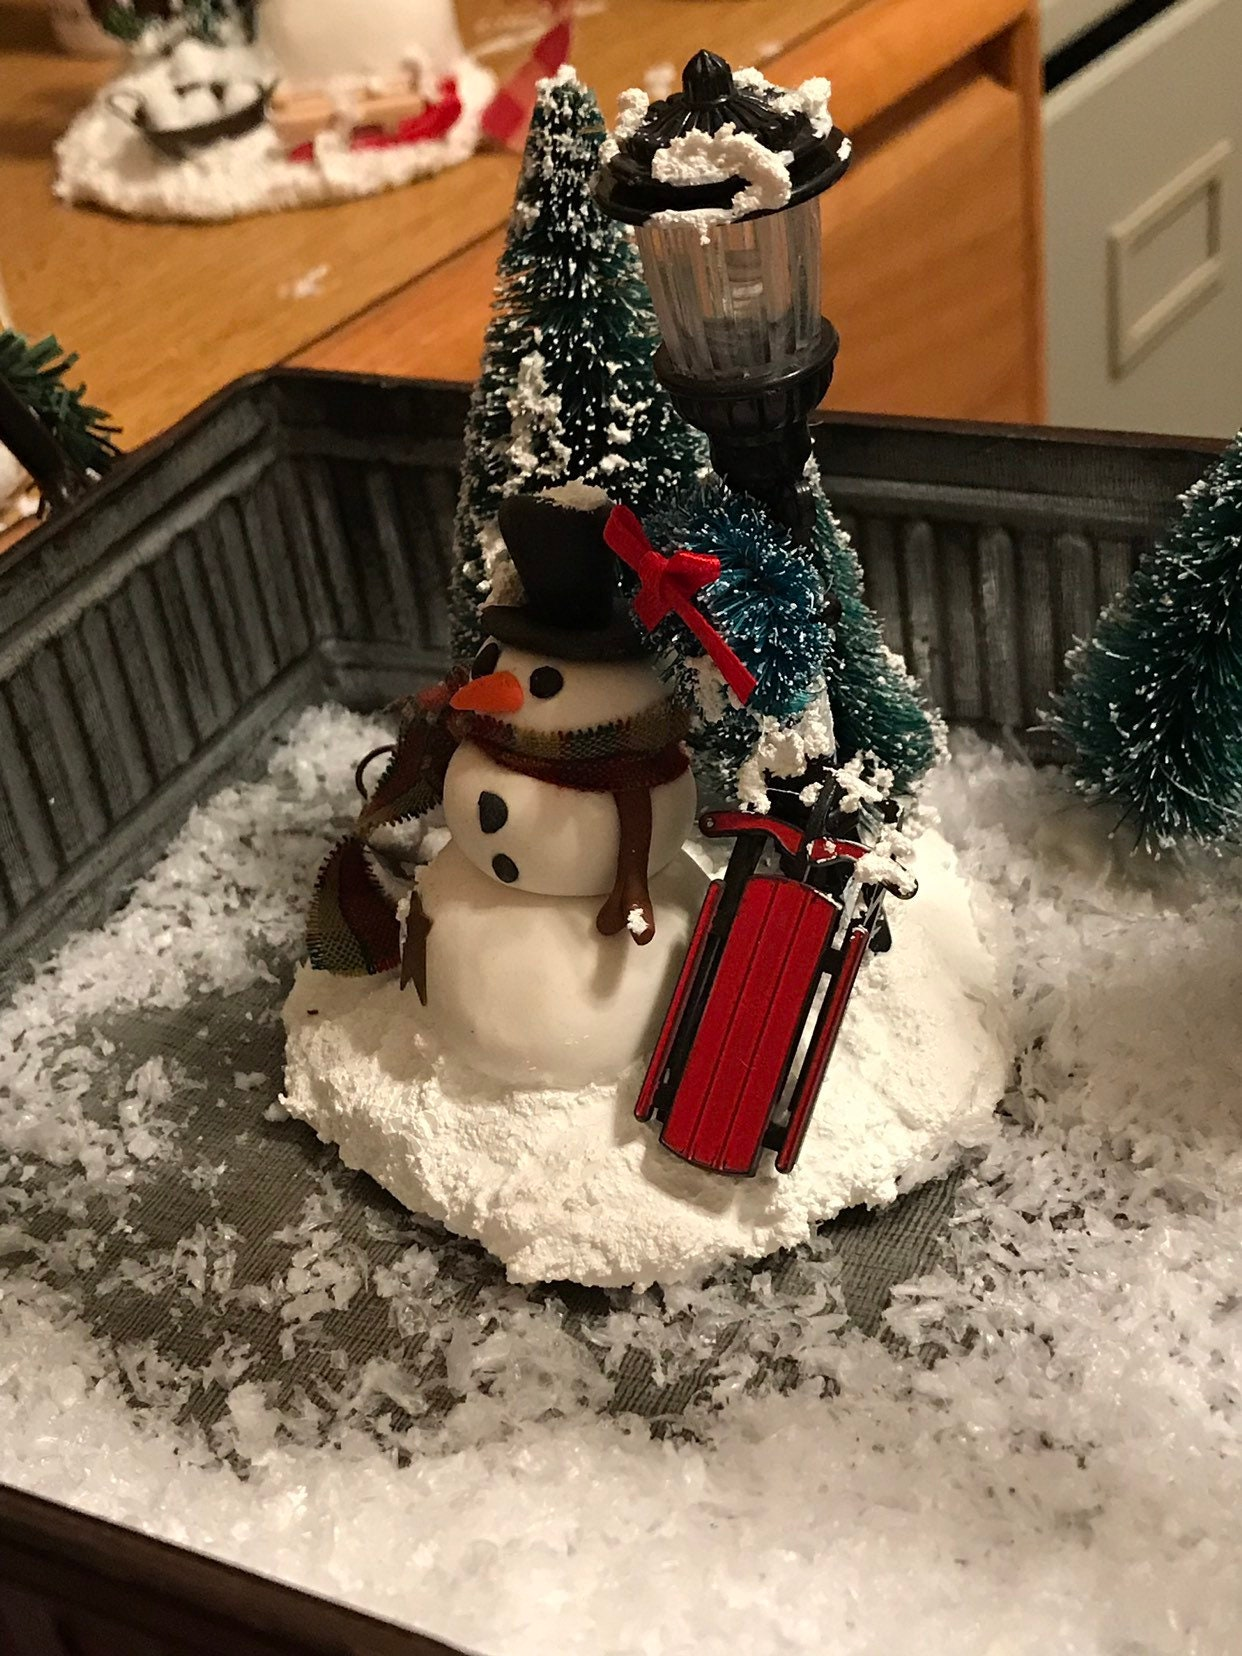 Polymer Clay Christmas Village.Winter Village Snowman And Lamppost Scene Polymer Clay